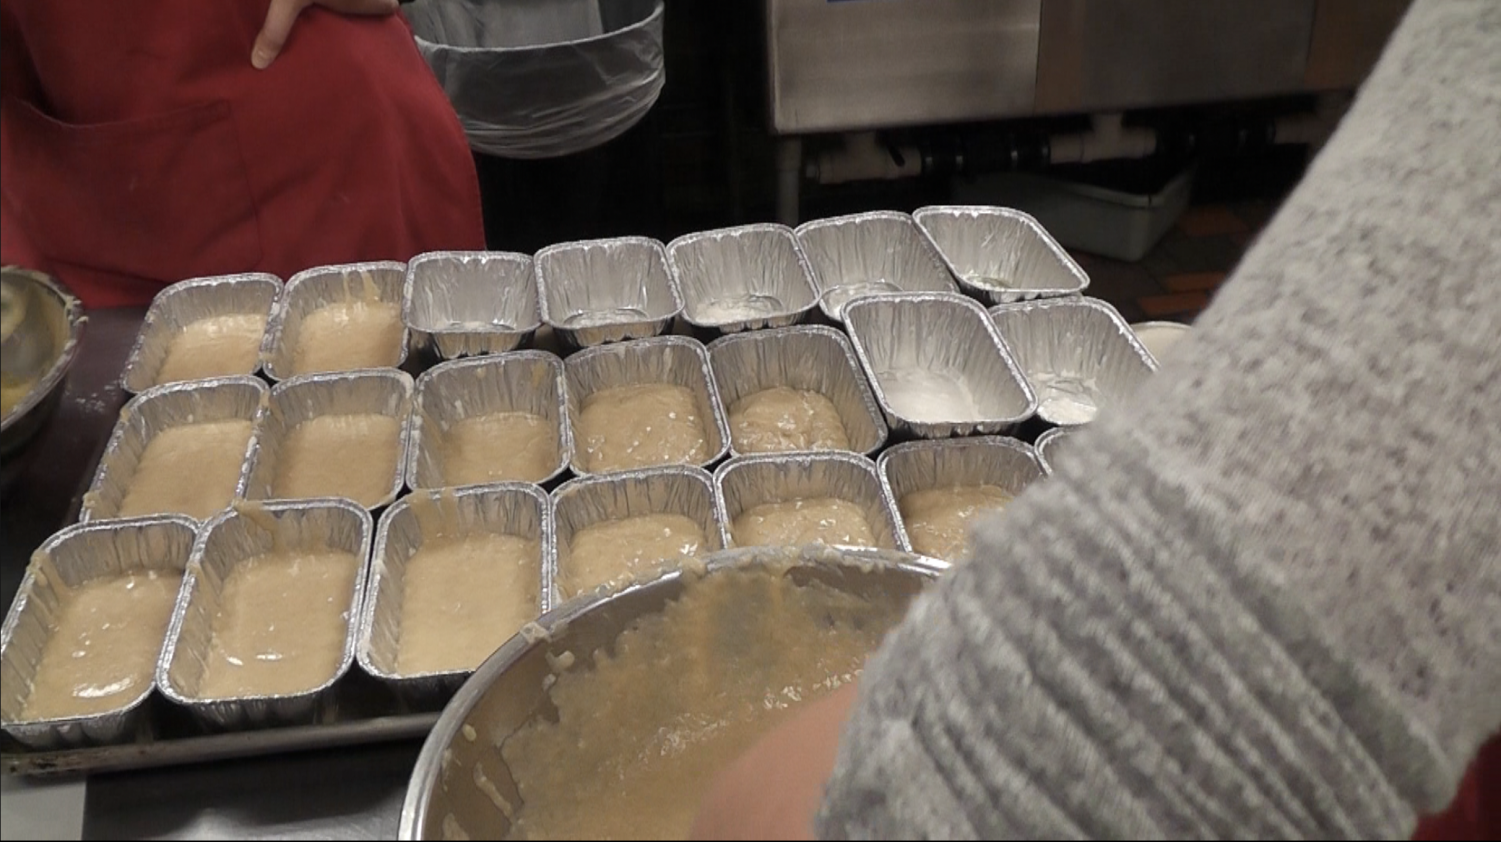 Students filled over 300 bread pans.